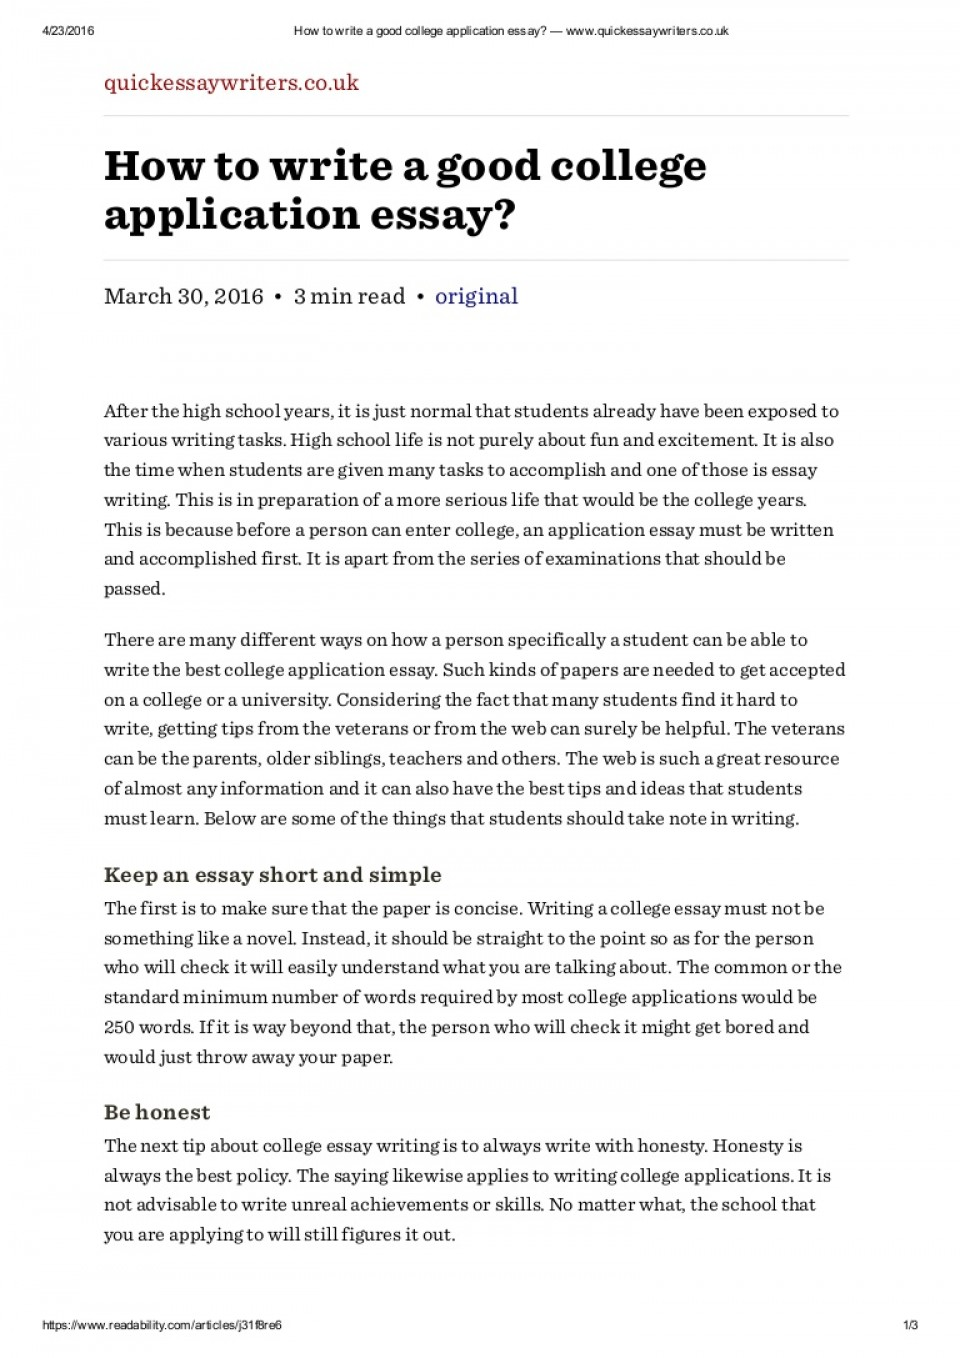 001 Essay Example What Not To Write About In Frightening College Things Your Admissions 960